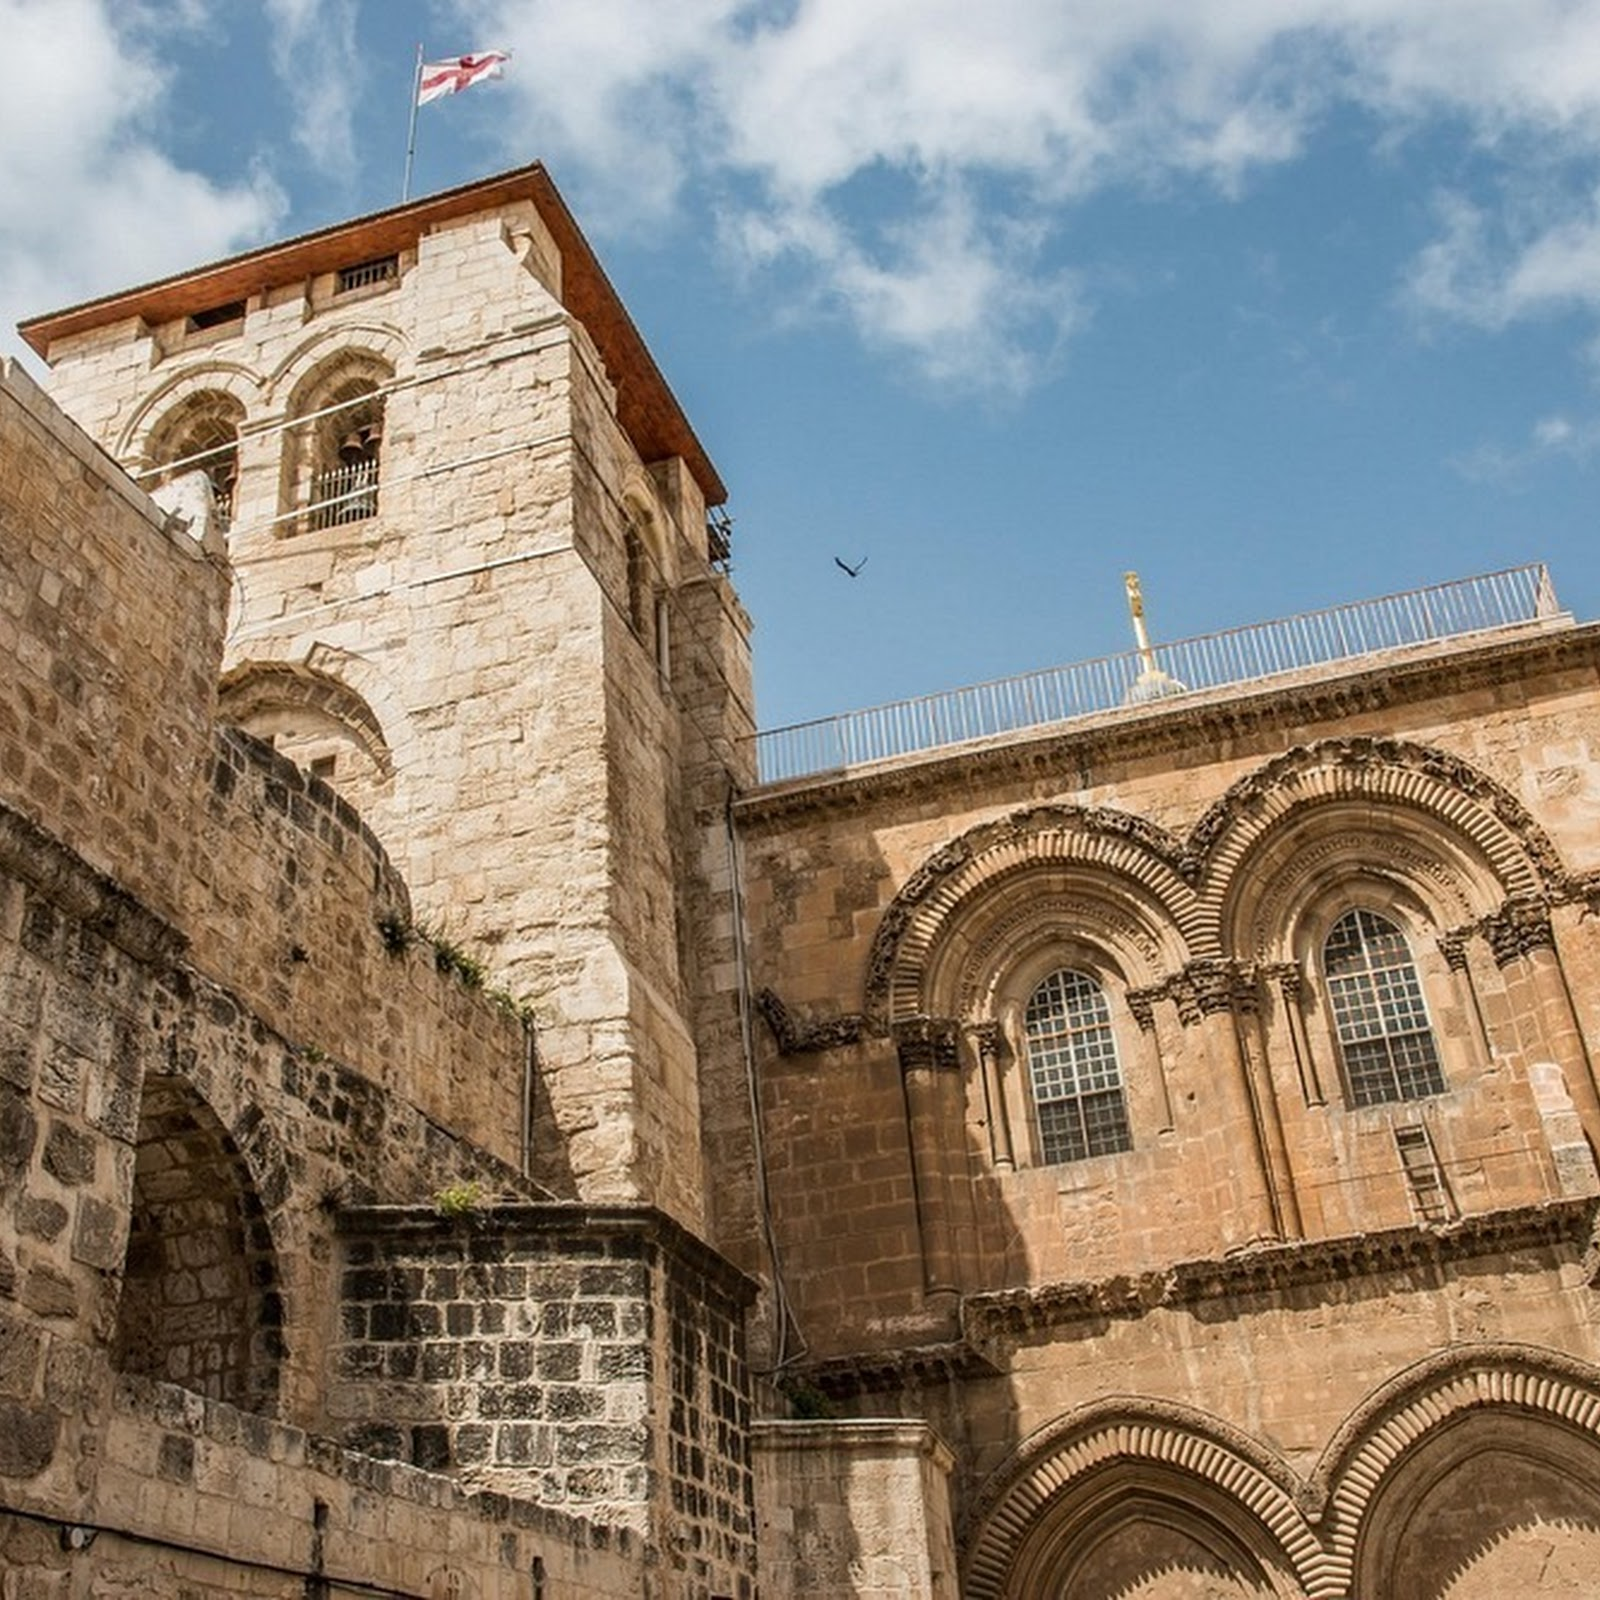 The Immovable Ladder of Jerusalem's Church of The Holy Sepulchre